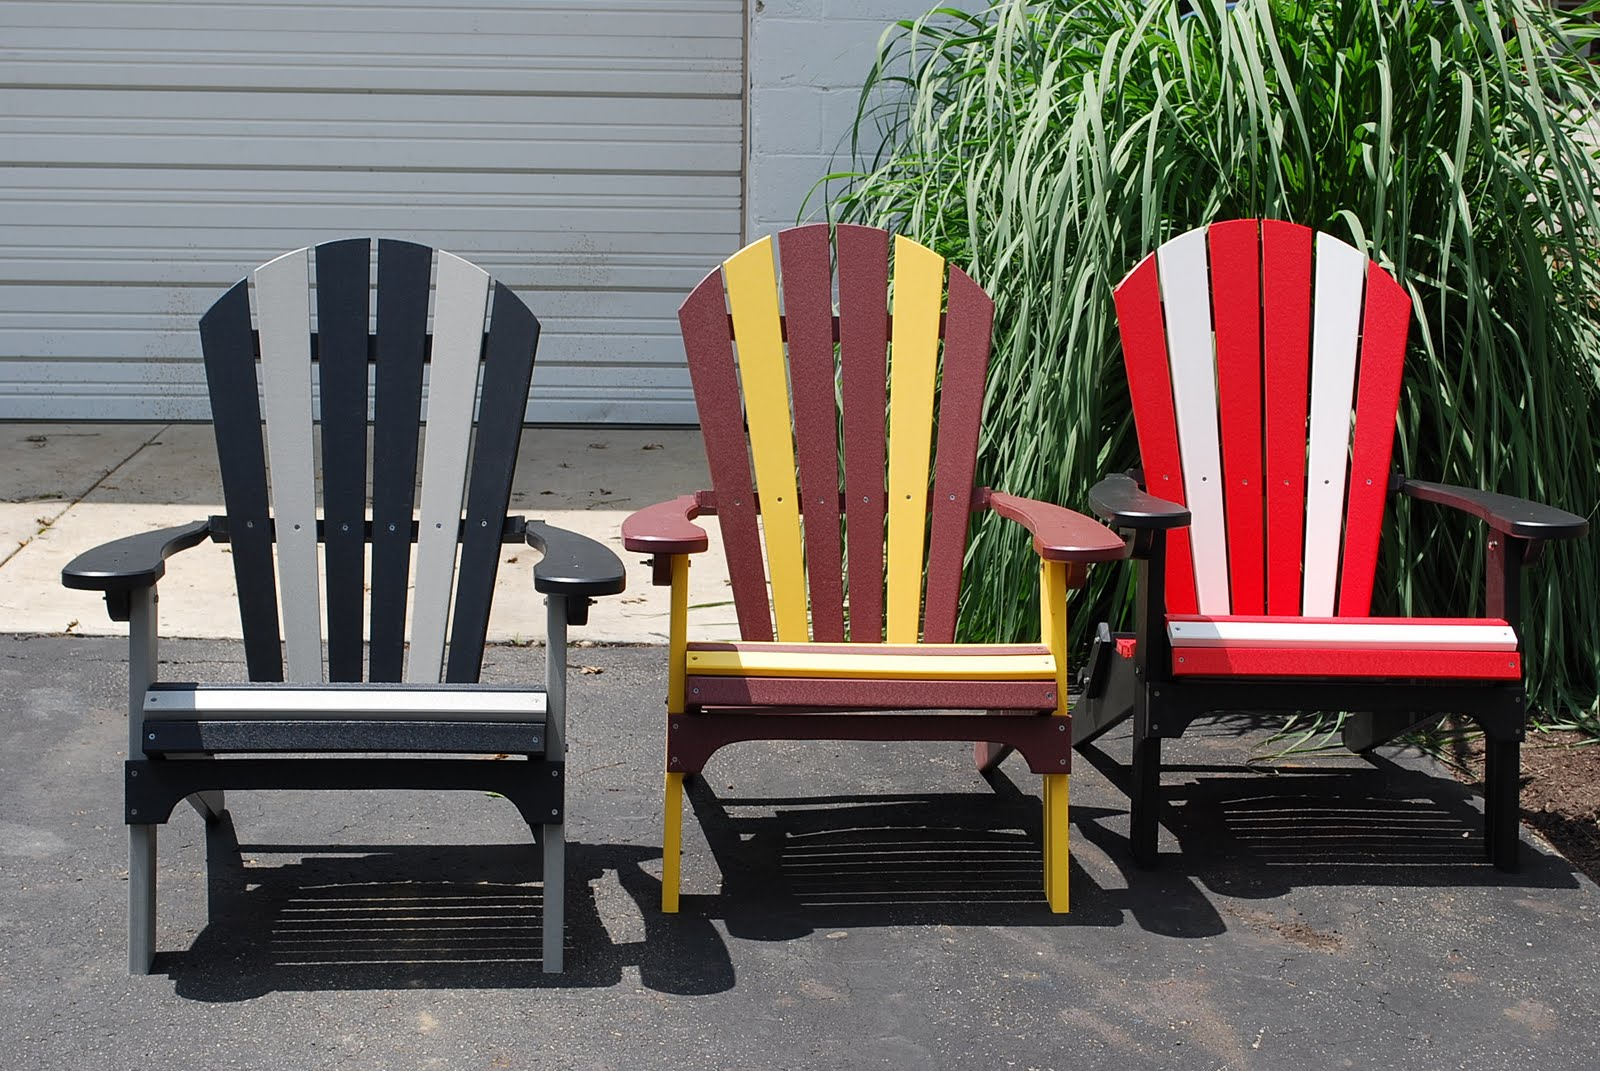 Now available for the first time westerville schools adirondack chairs our outdoor furniture provider has agreed to make these chairs available in the